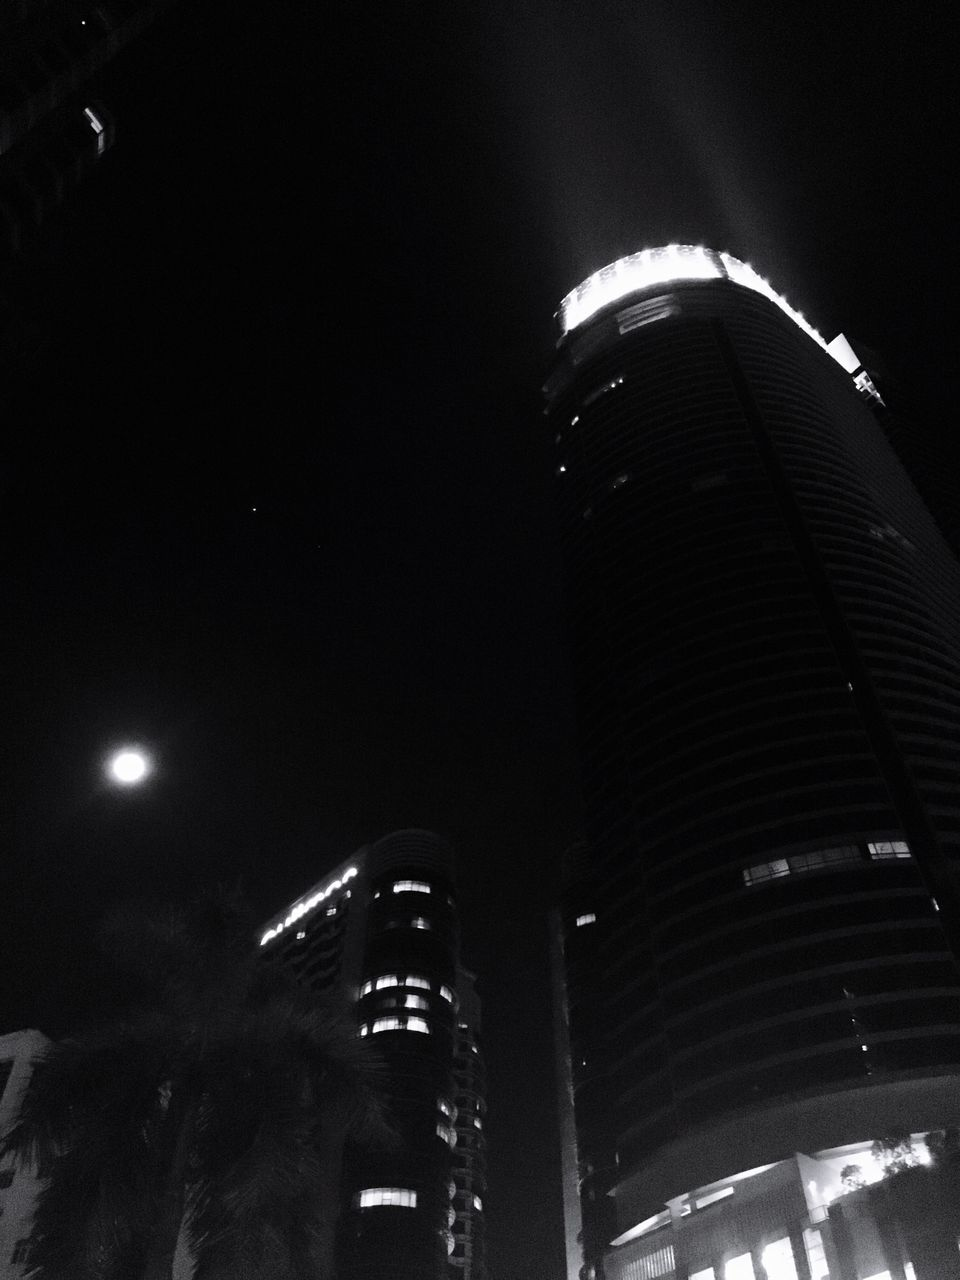 illuminated, night, architecture, city, low angle view, modern, built structure, building exterior, city life, skyscraper, no people, outdoors, sky